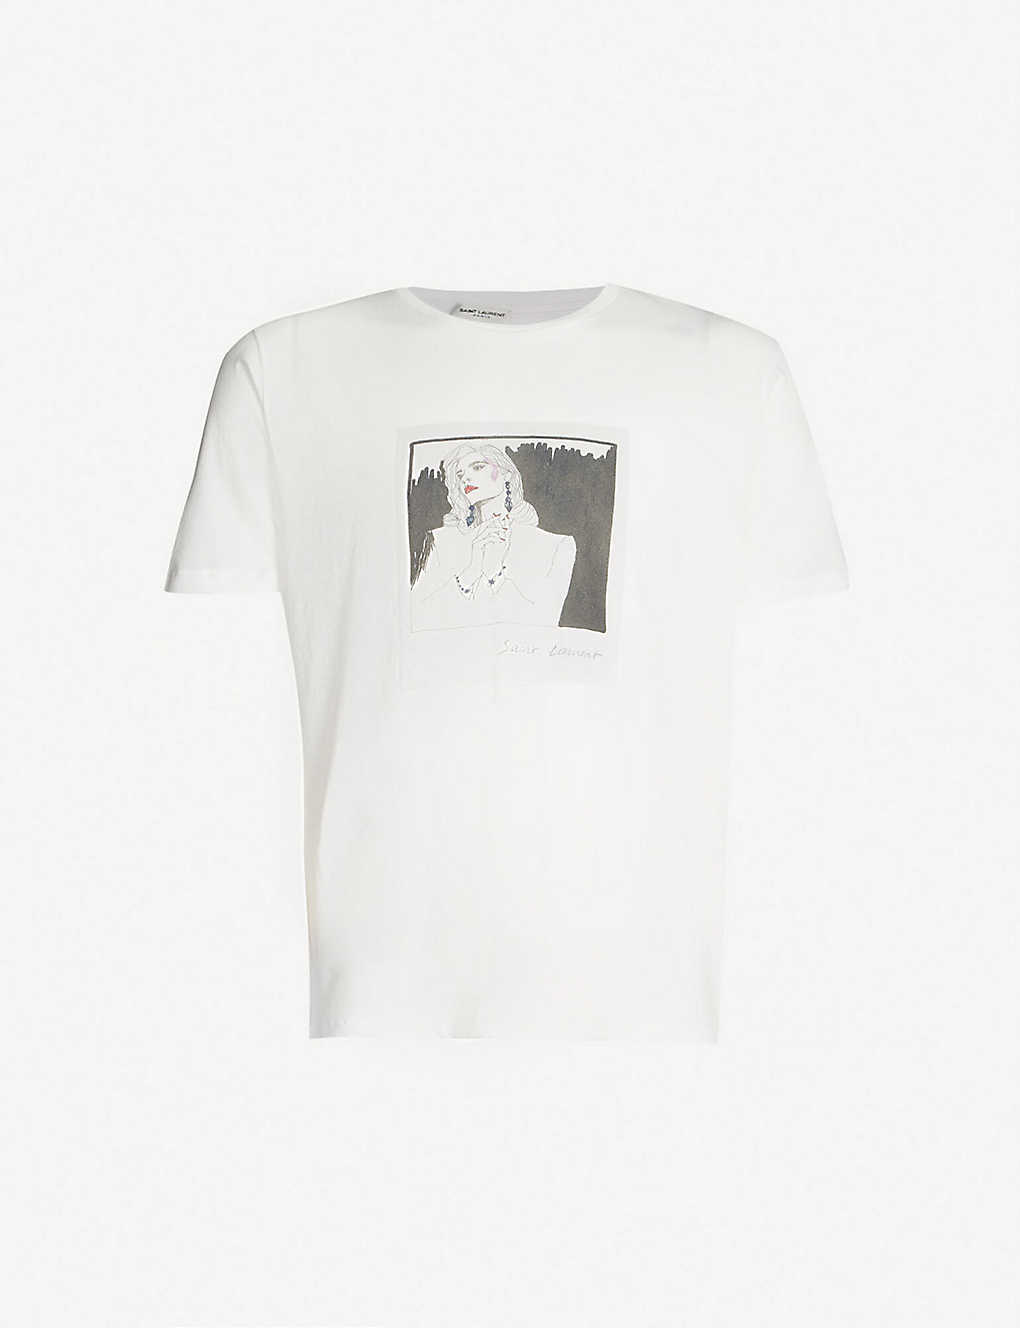 75da25eb9b38 SAINT LAURENT - Logo-print cotton-jersey T-shirt | Selfridges.com